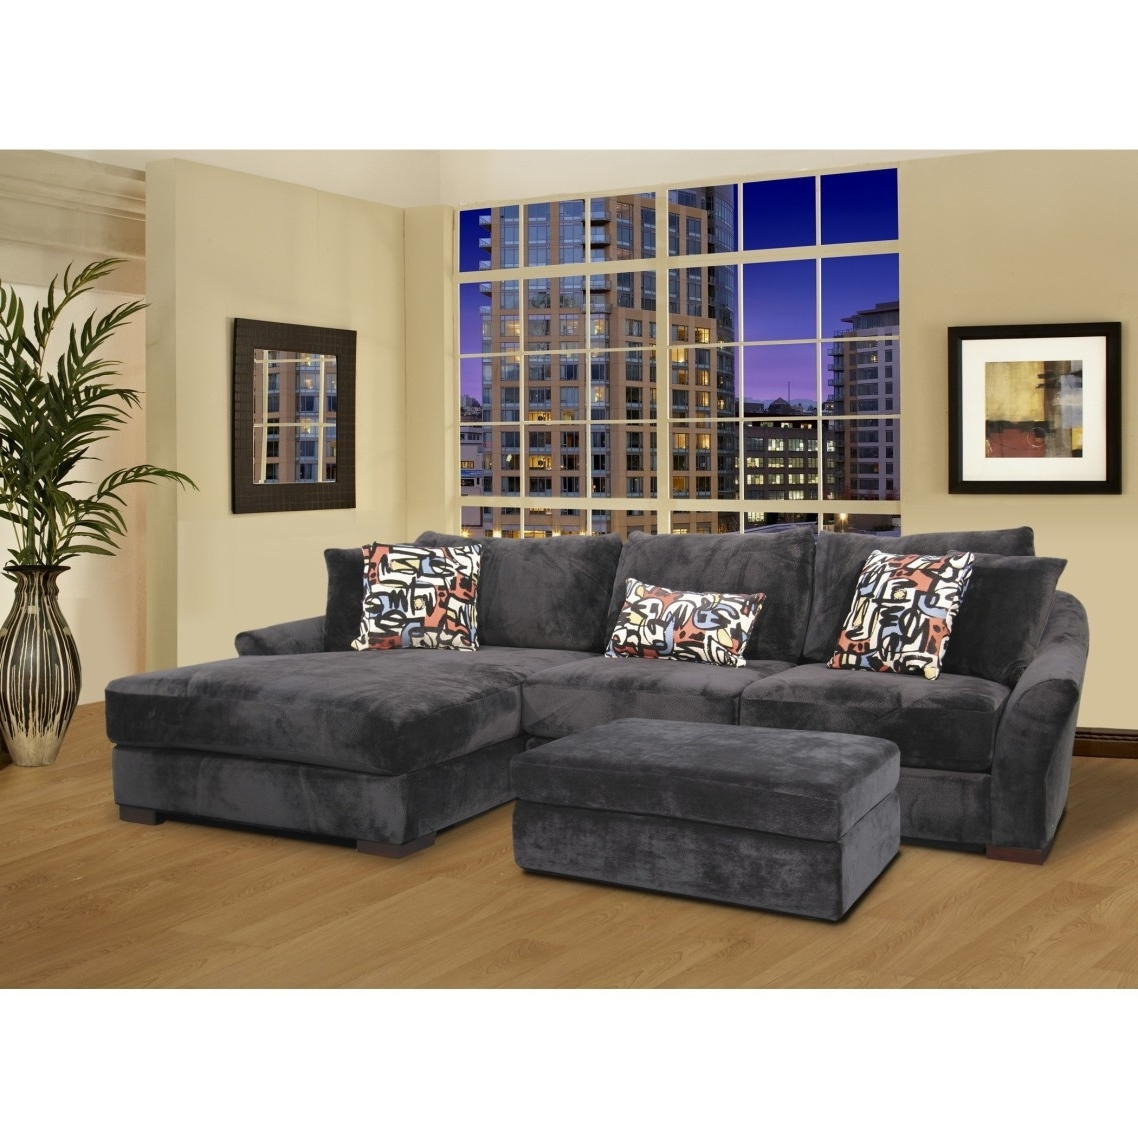 Well Liked Gray Velvet Oversized Sectional Sleeper Sofa With Left Chaise Pertaining To Ventura County Sectional Sofas (View 20 of 20)